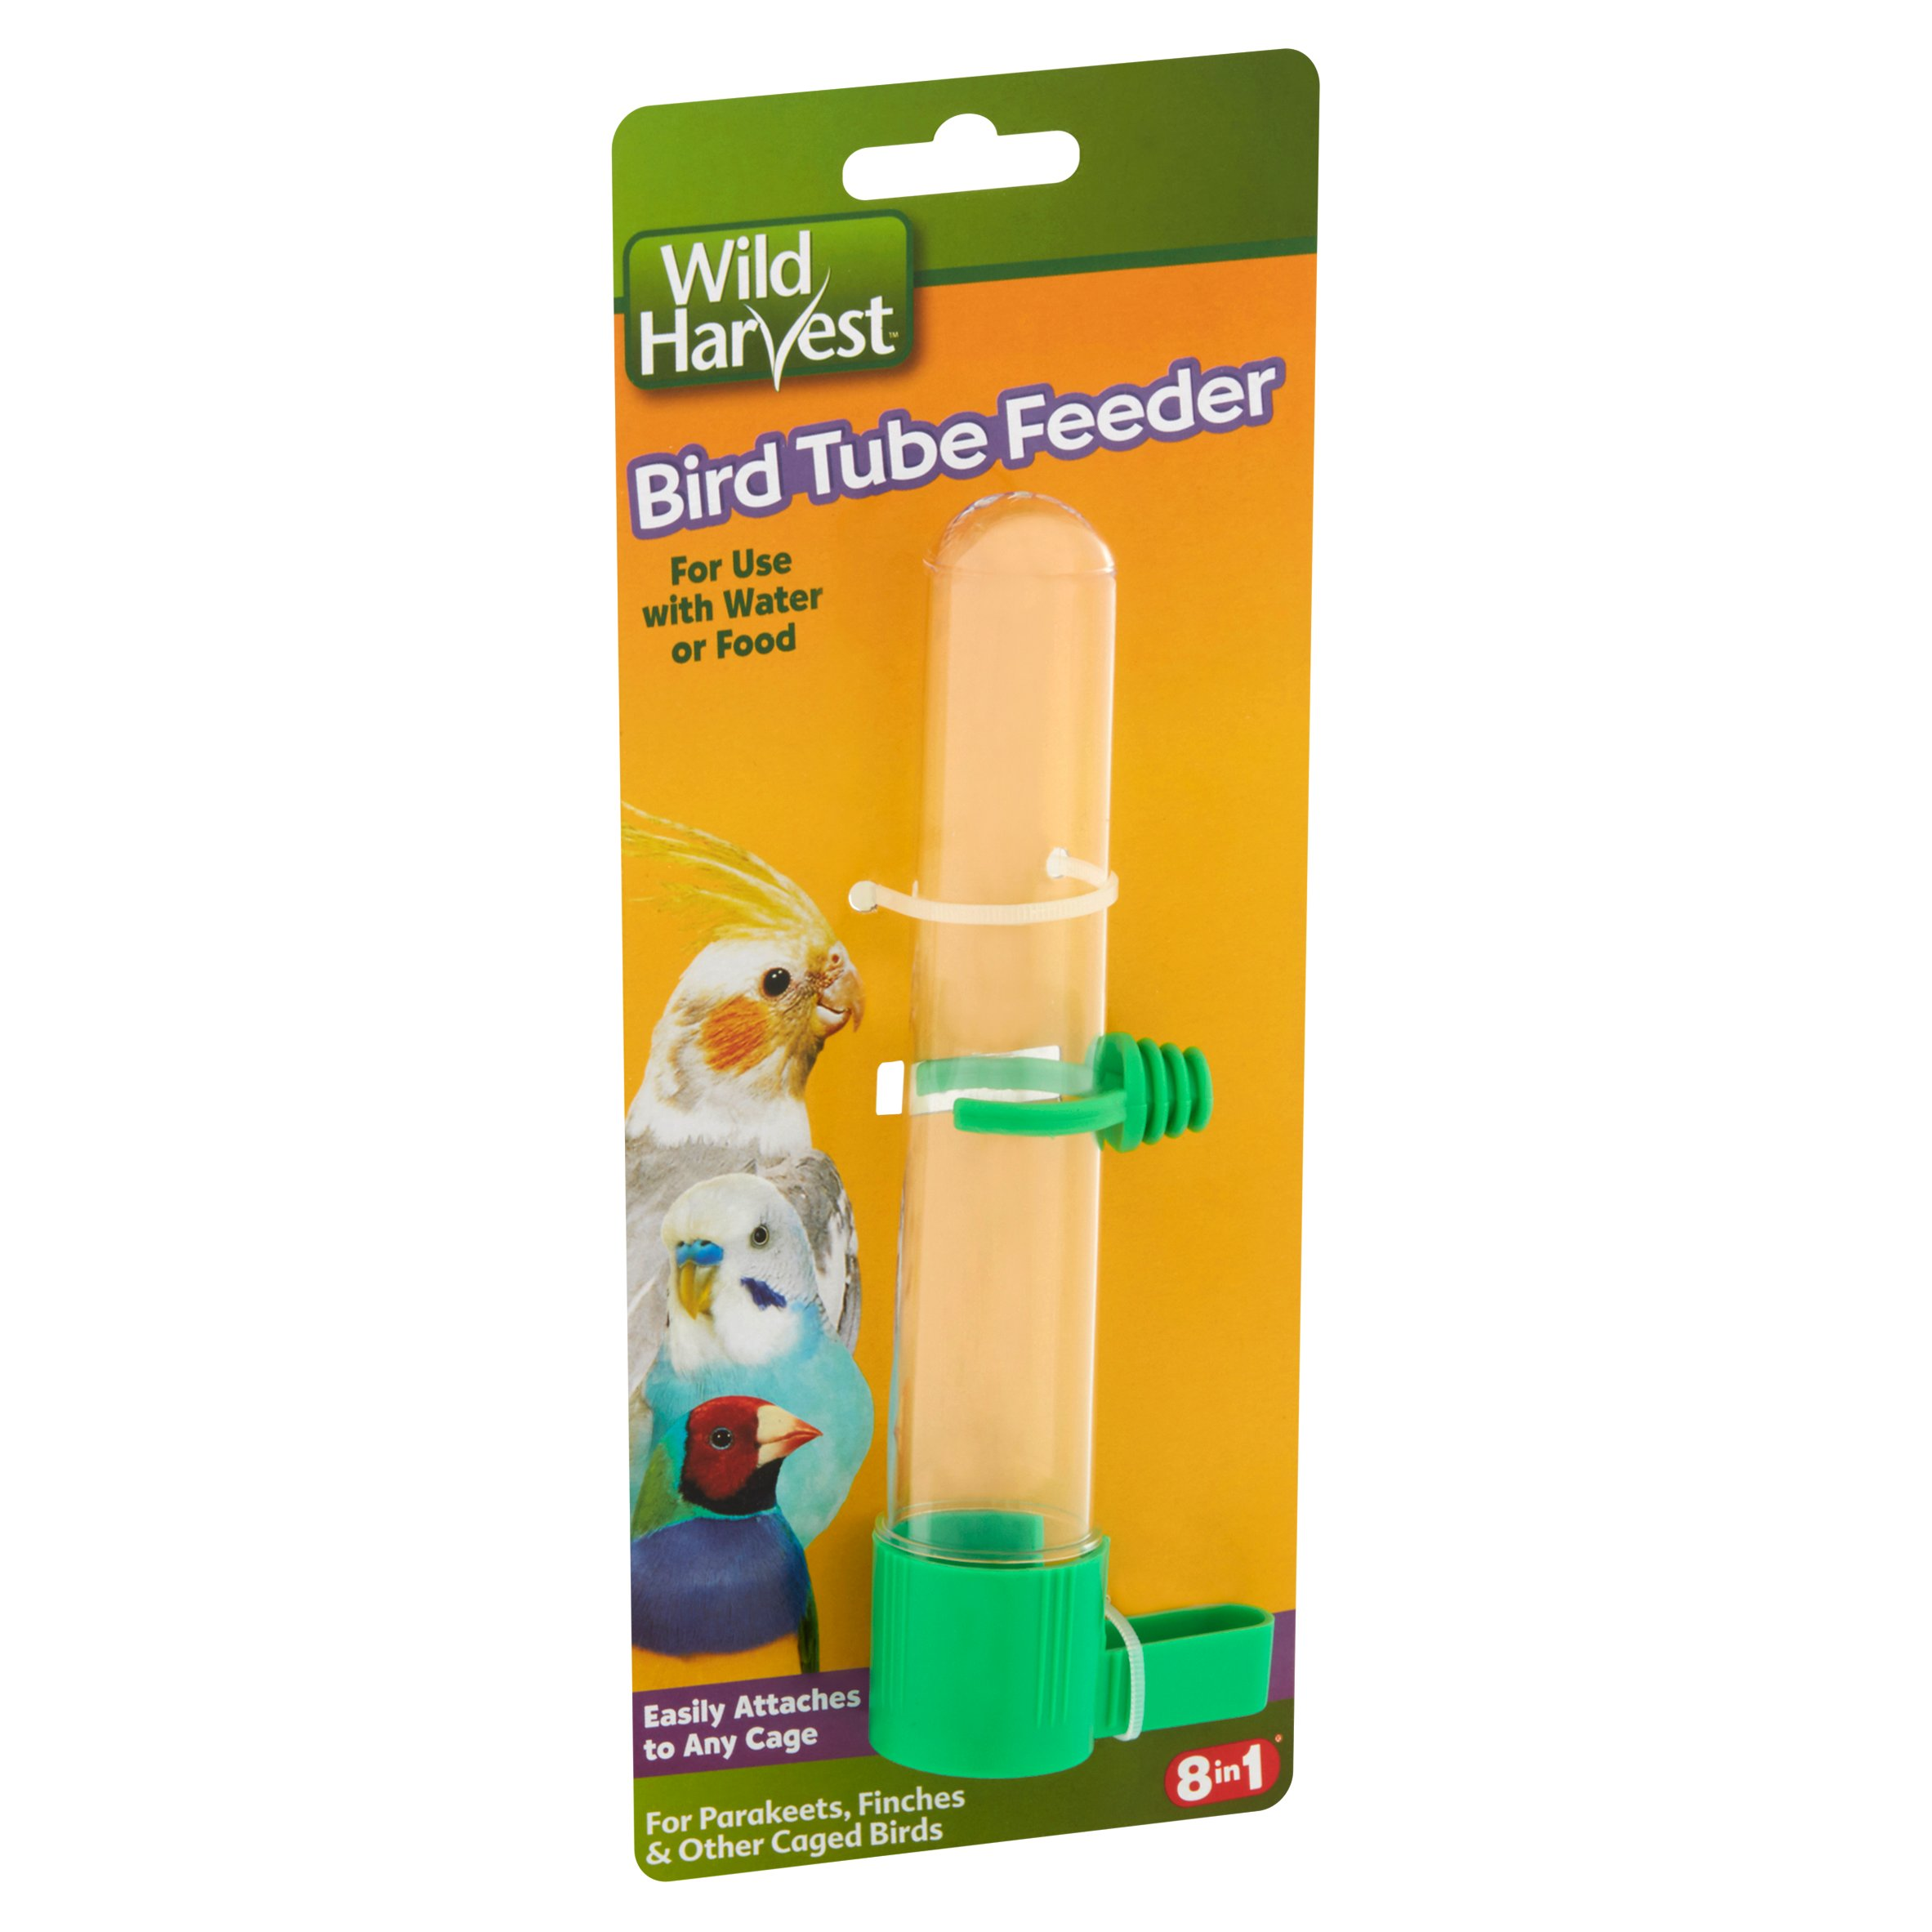 Wild Harvest Bird Tube Feeder for Water or Food, 1-Count - Walmart.com